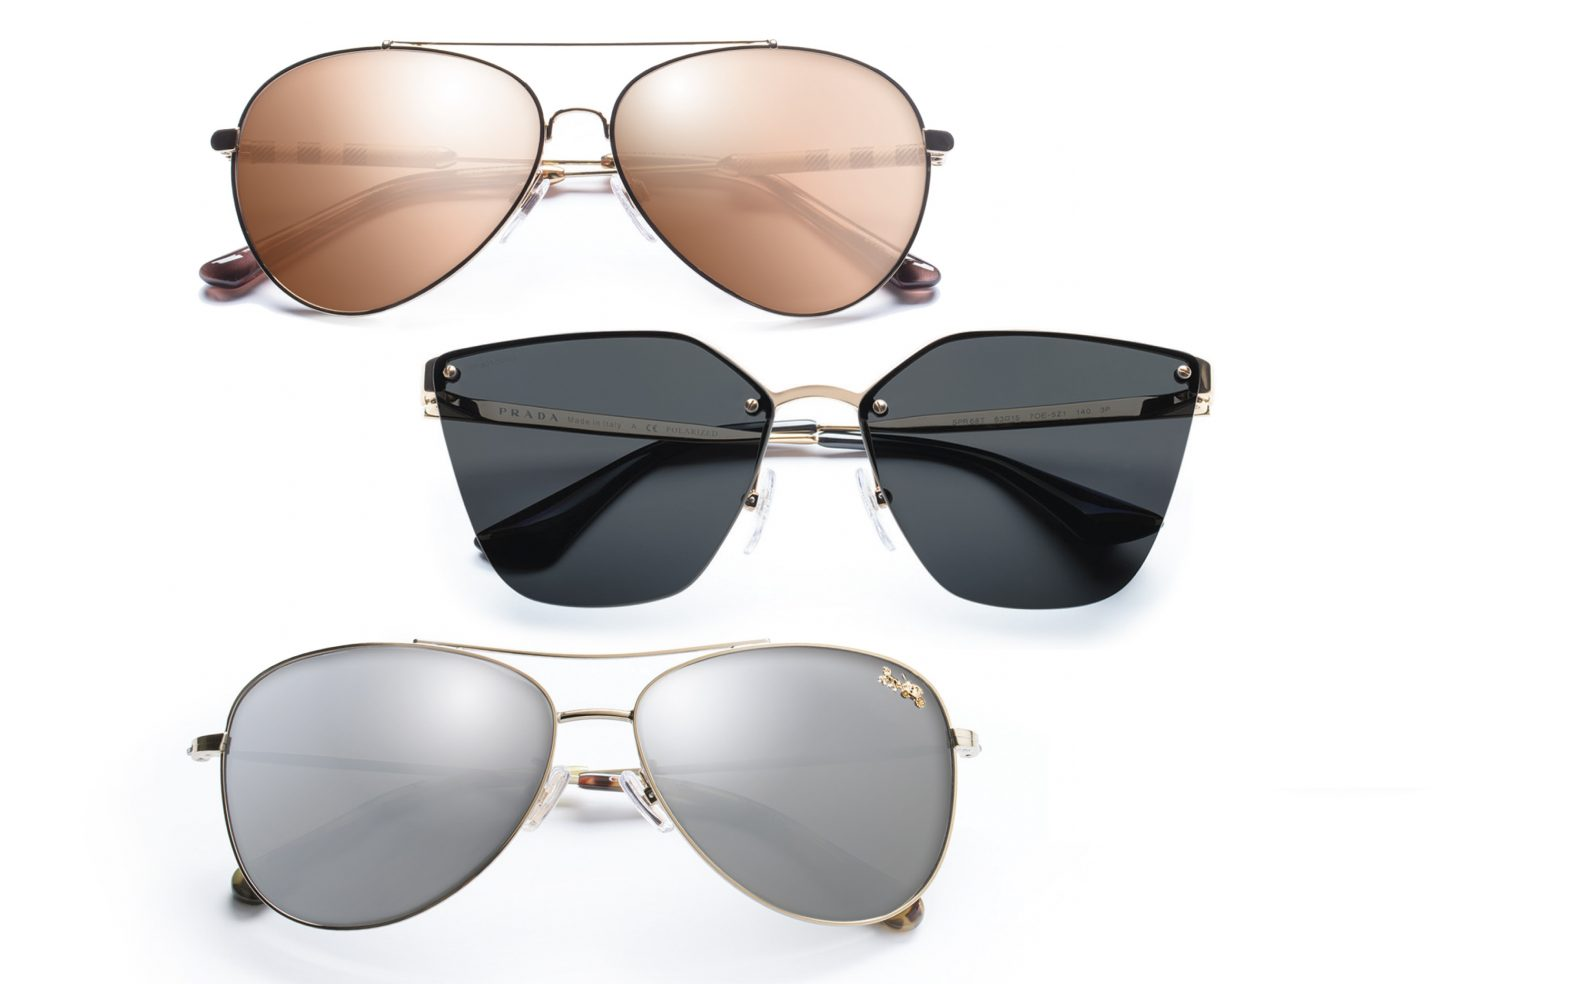 Professional product photograph of three pairs of chic designer sunglasses on a white background